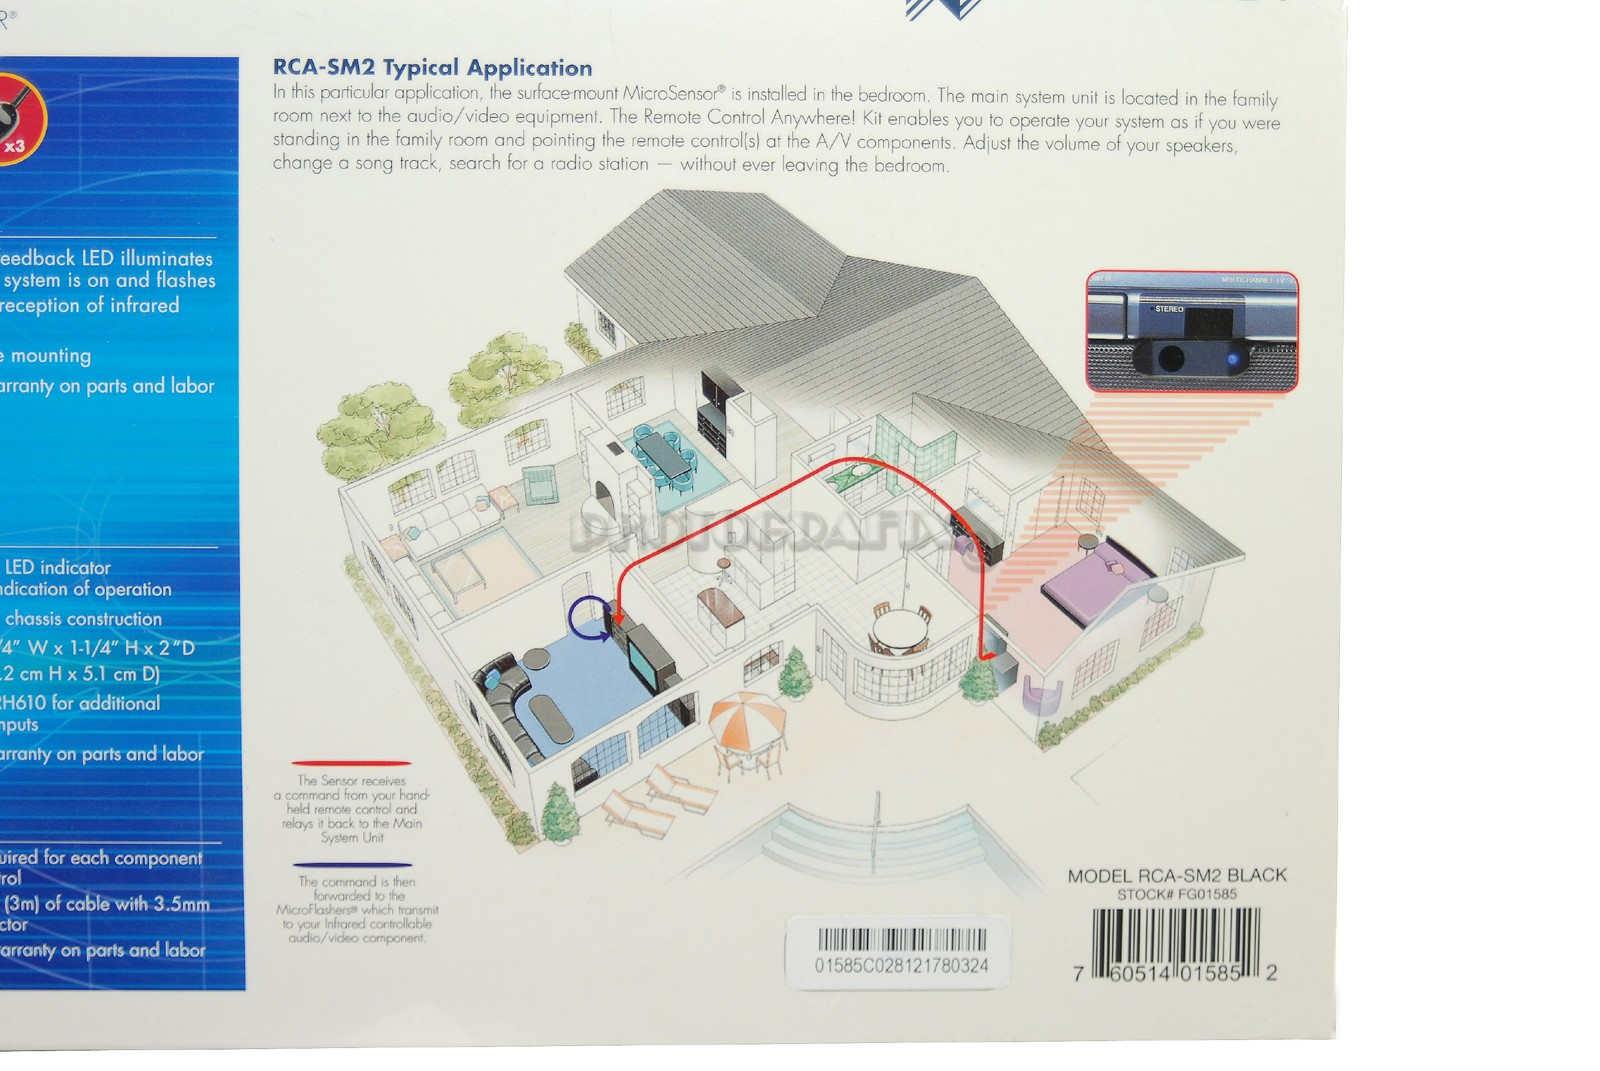 small resolution of niles rca sm2 remote control anywhere kit with surface mount ir microsensor niles rca sm2 wiring diagram